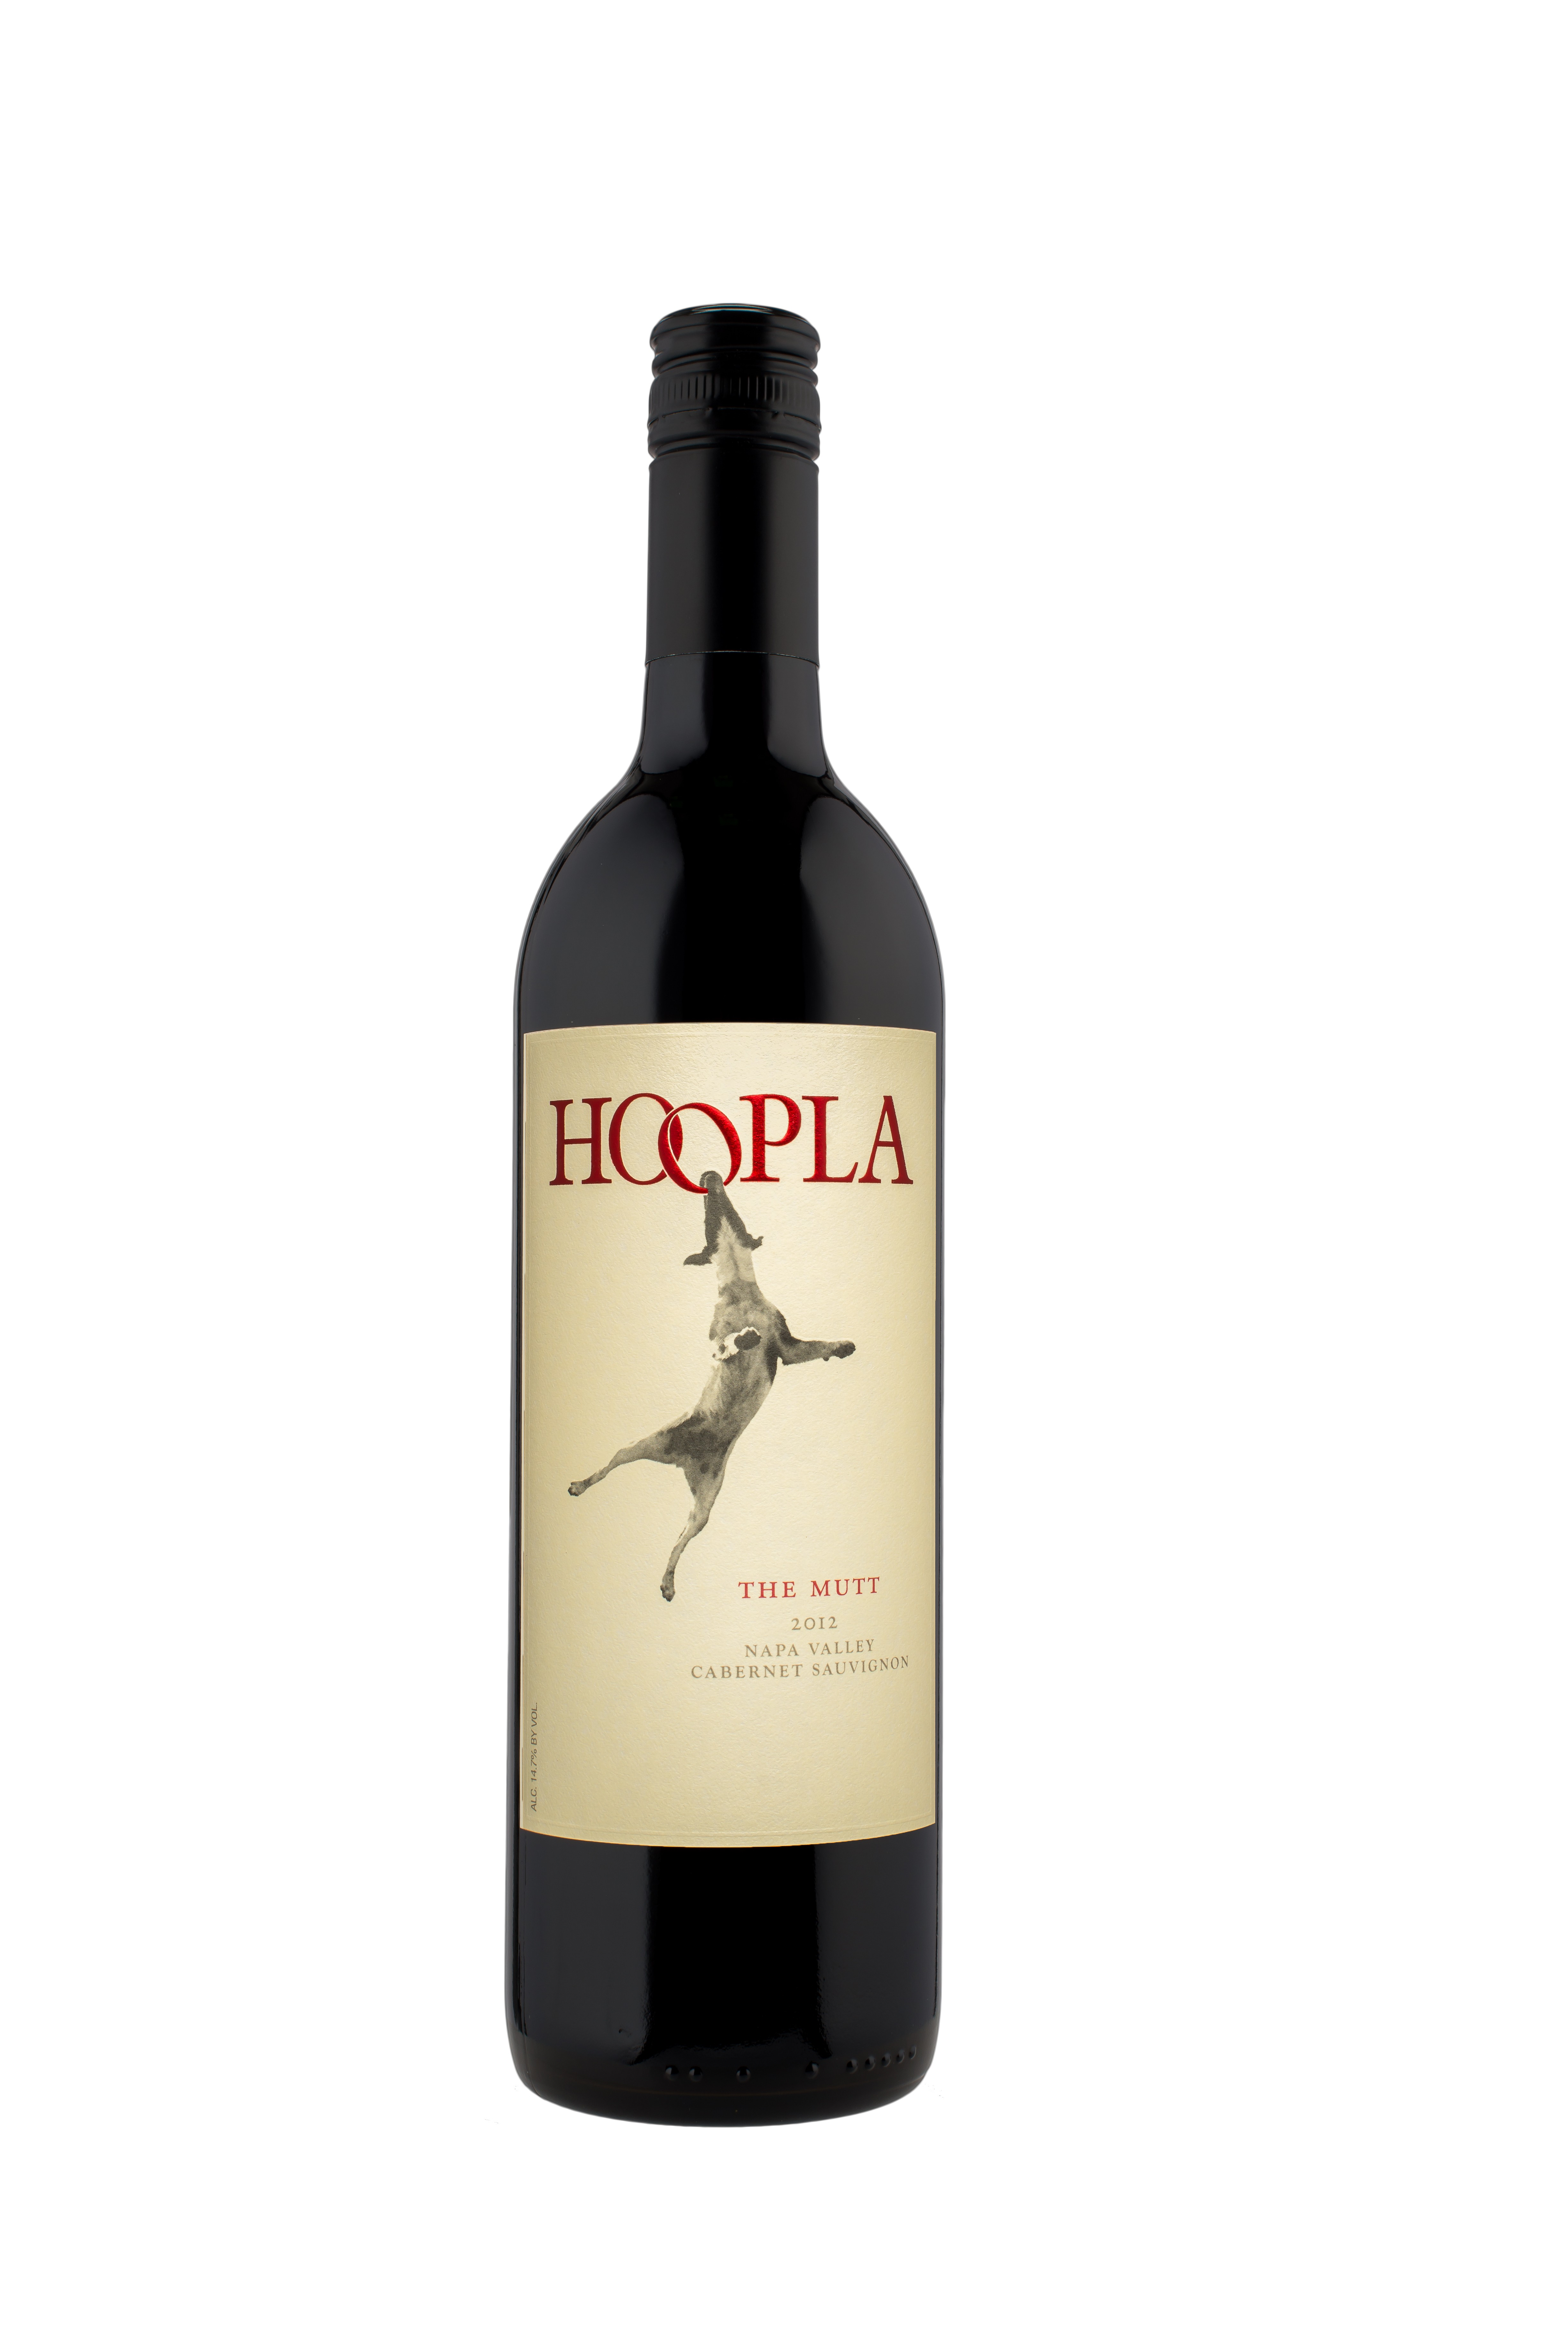 Buy Hoopla The Mutt Cabernet Sauvignon 2014 at herculeswines.co.uk